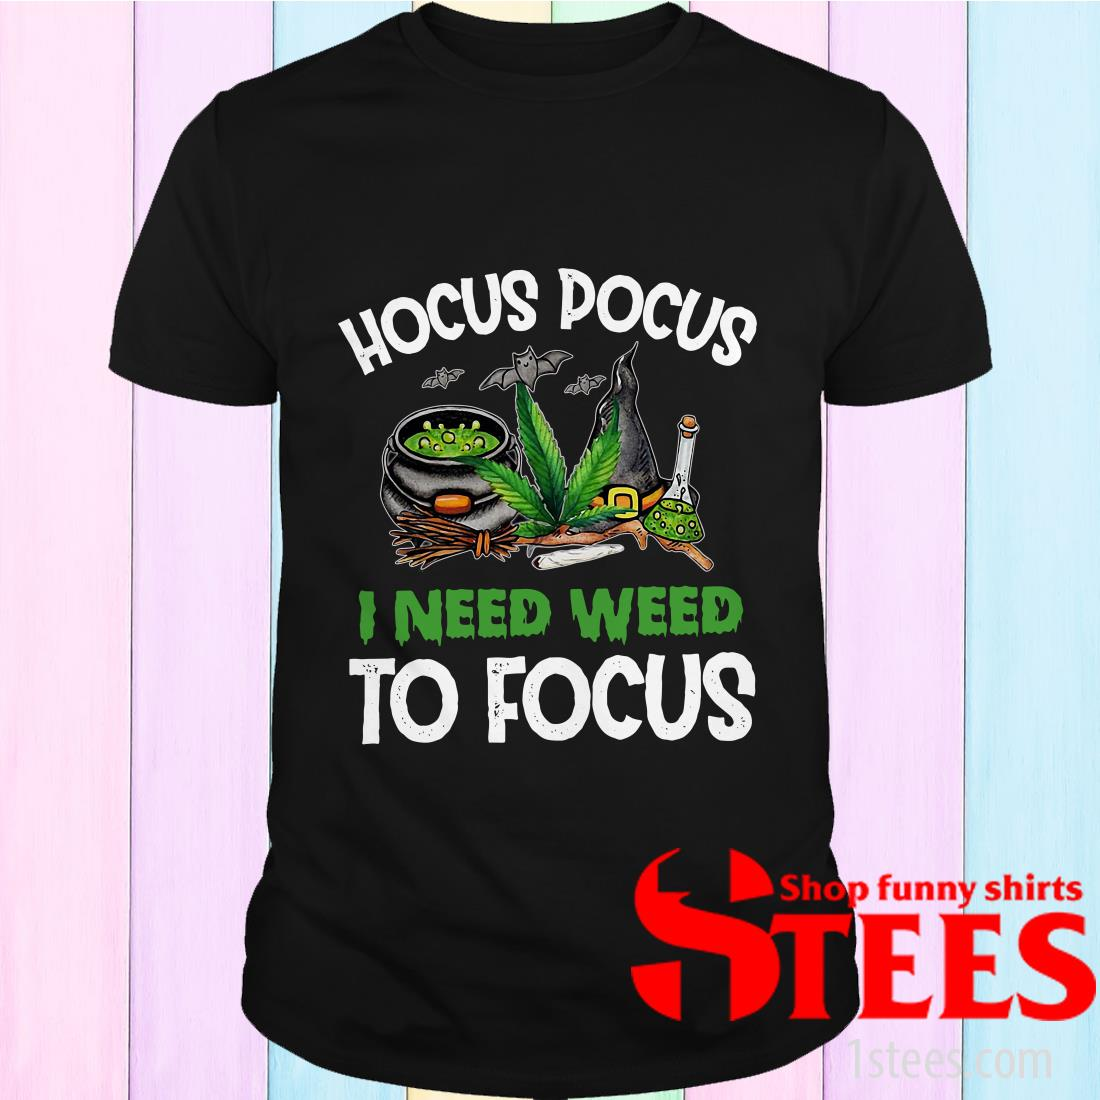 Hocus Pocus I Need Weed To Focus Halloween T-Shirt